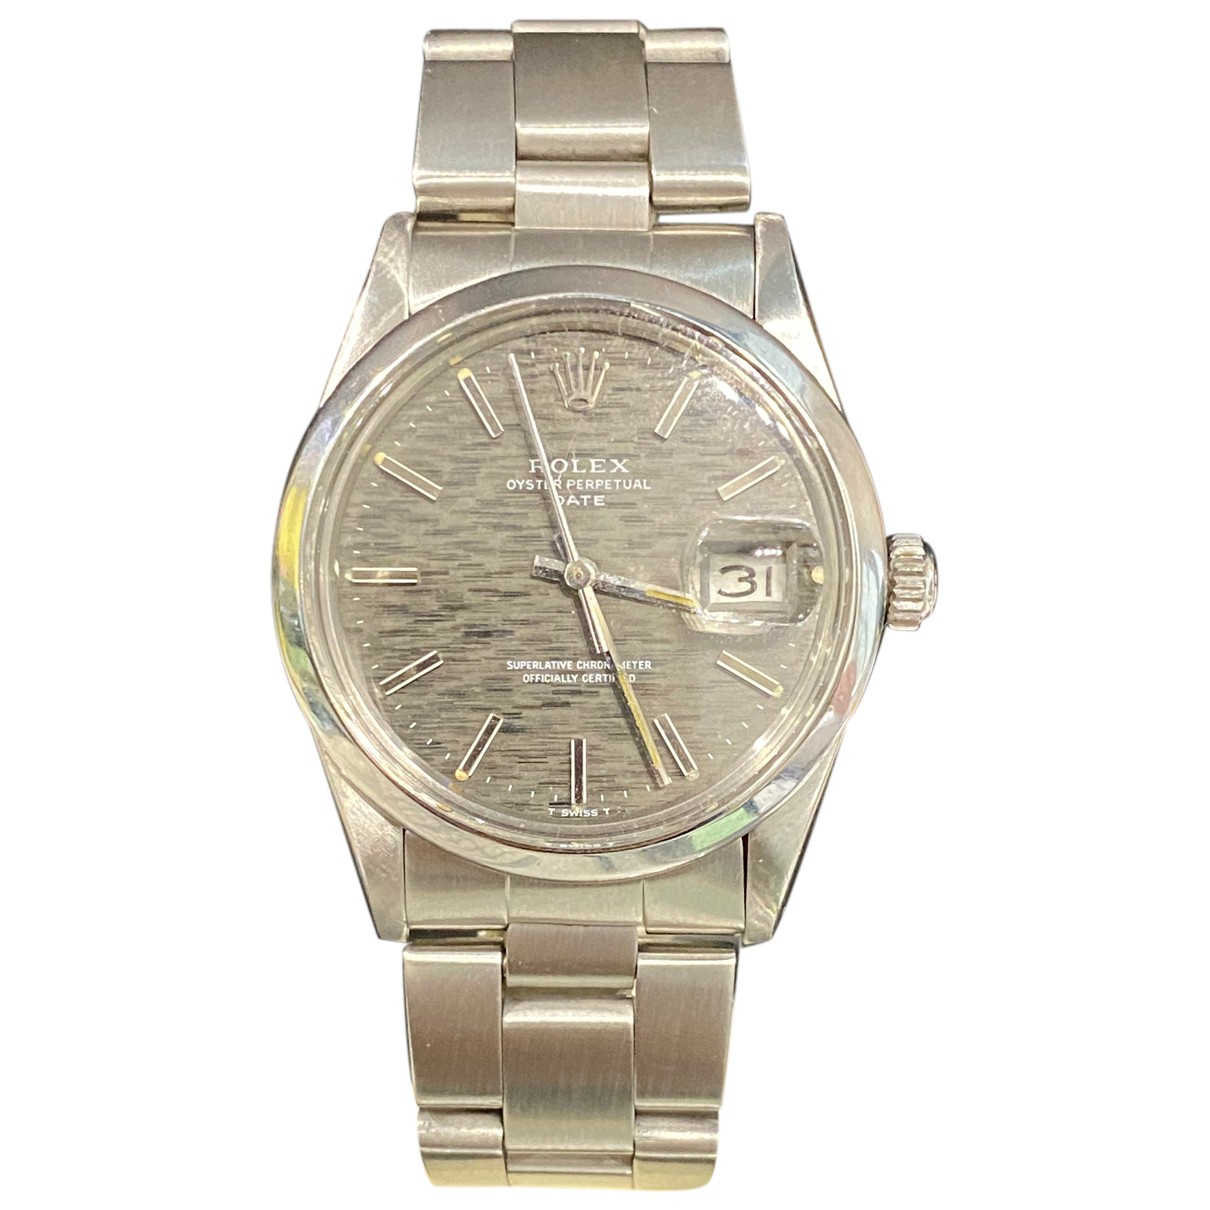 Rolex Oyster Perpetual 34mm Uhr in Stahl